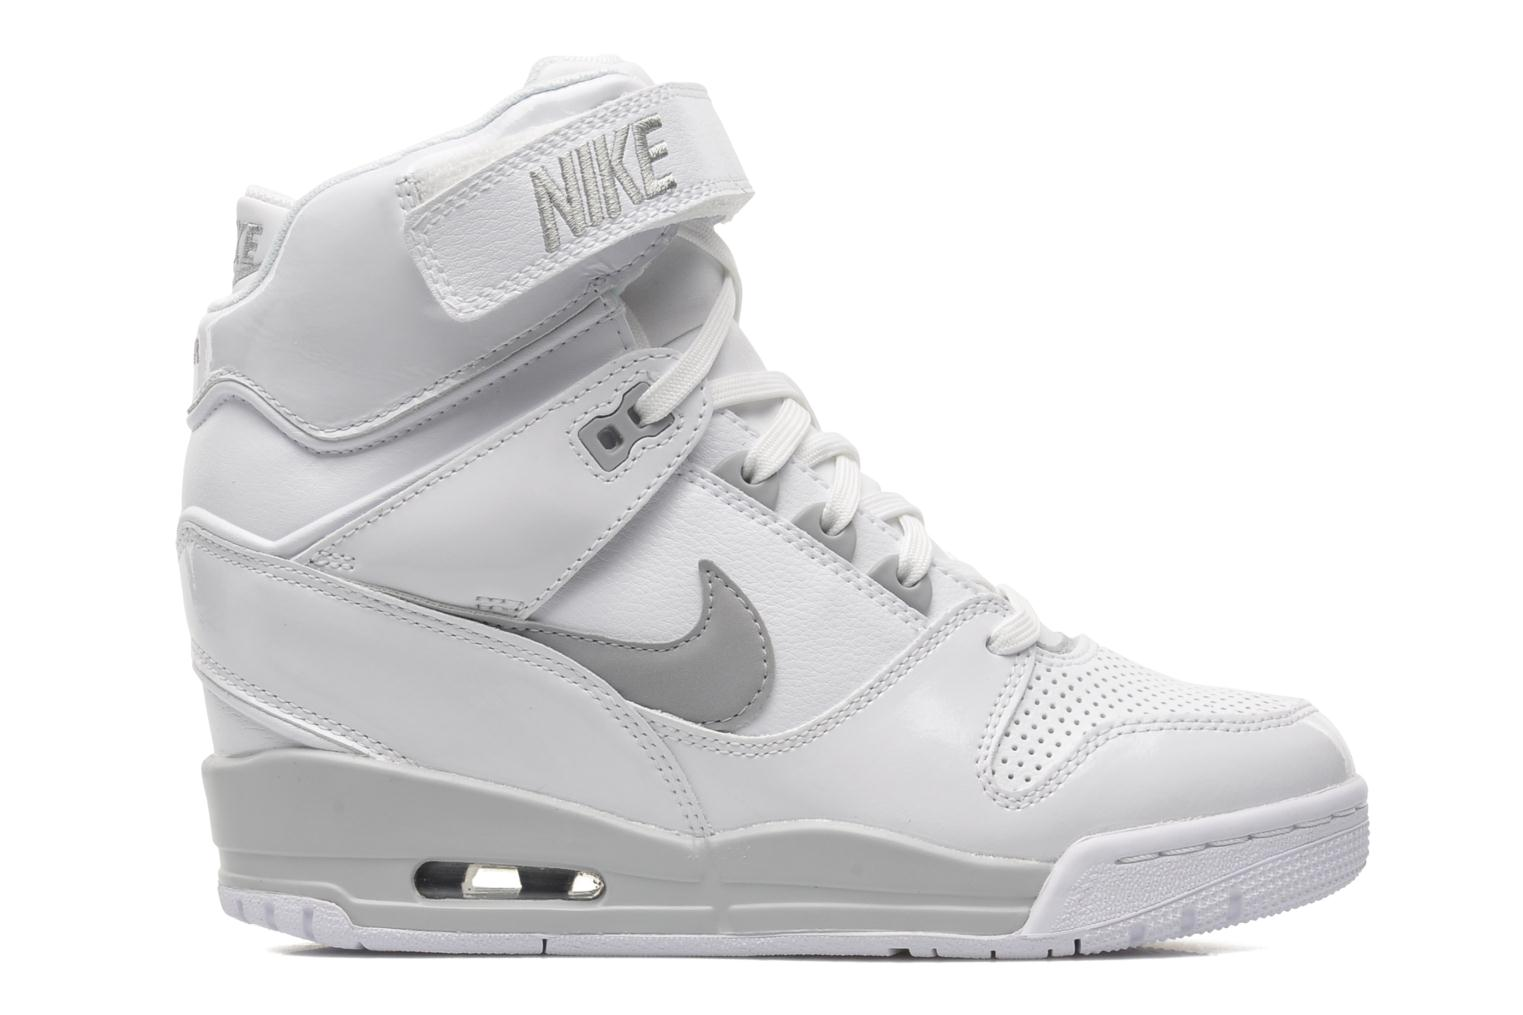 nike wmns nike air revolution sky hi trainers in white at. Black Bedroom Furniture Sets. Home Design Ideas